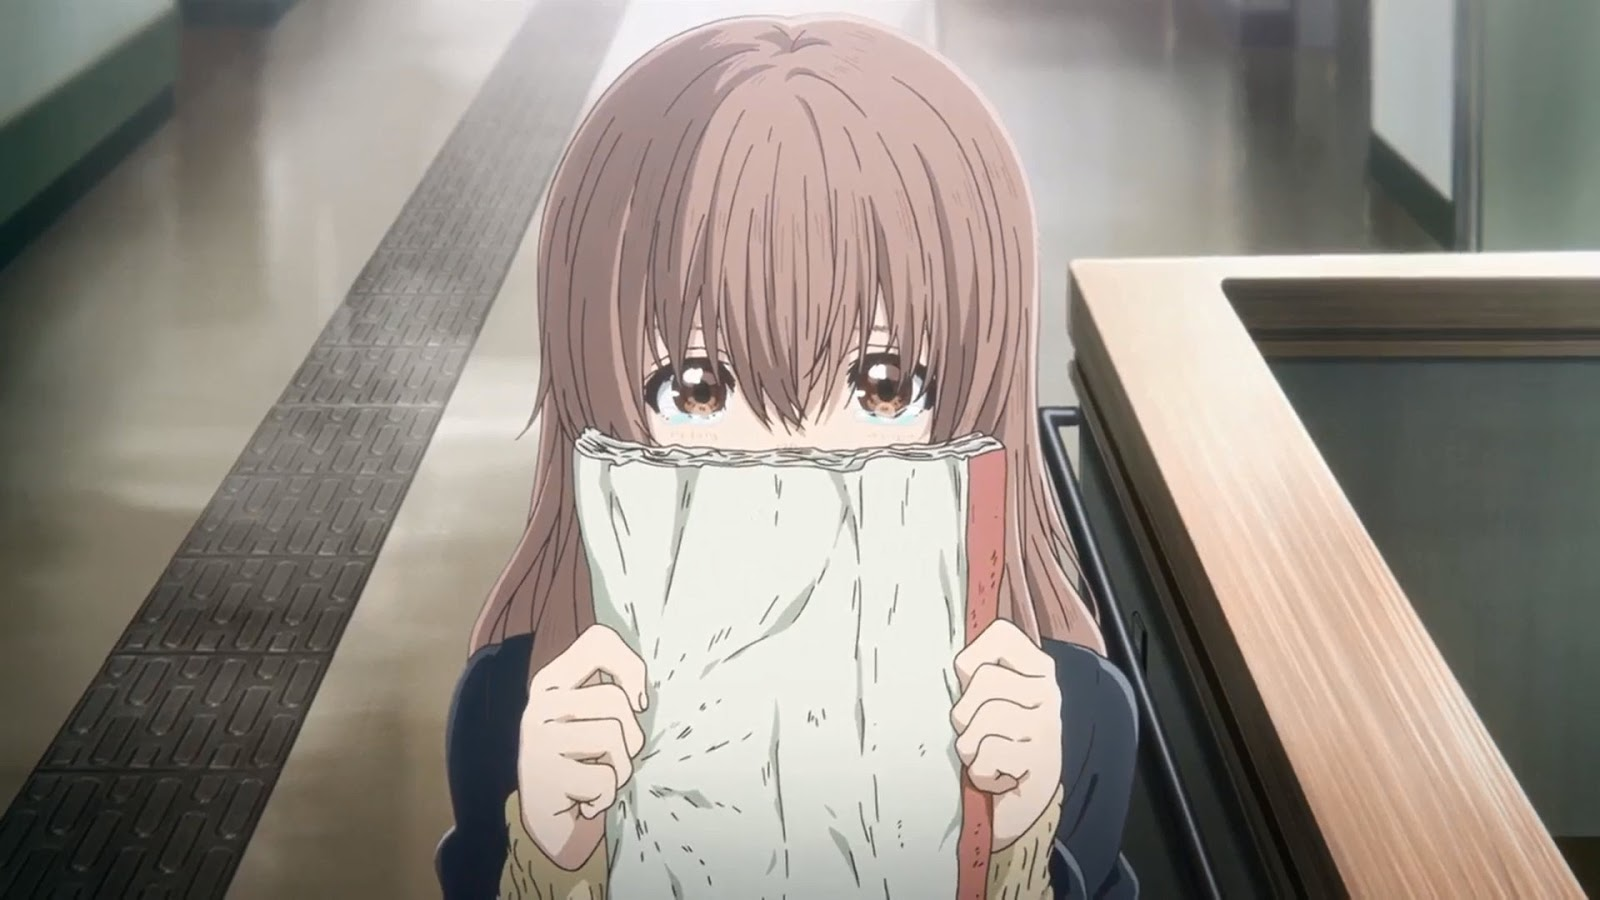 Nishimiya Shouko - bohaterka anime Koe no Katachi